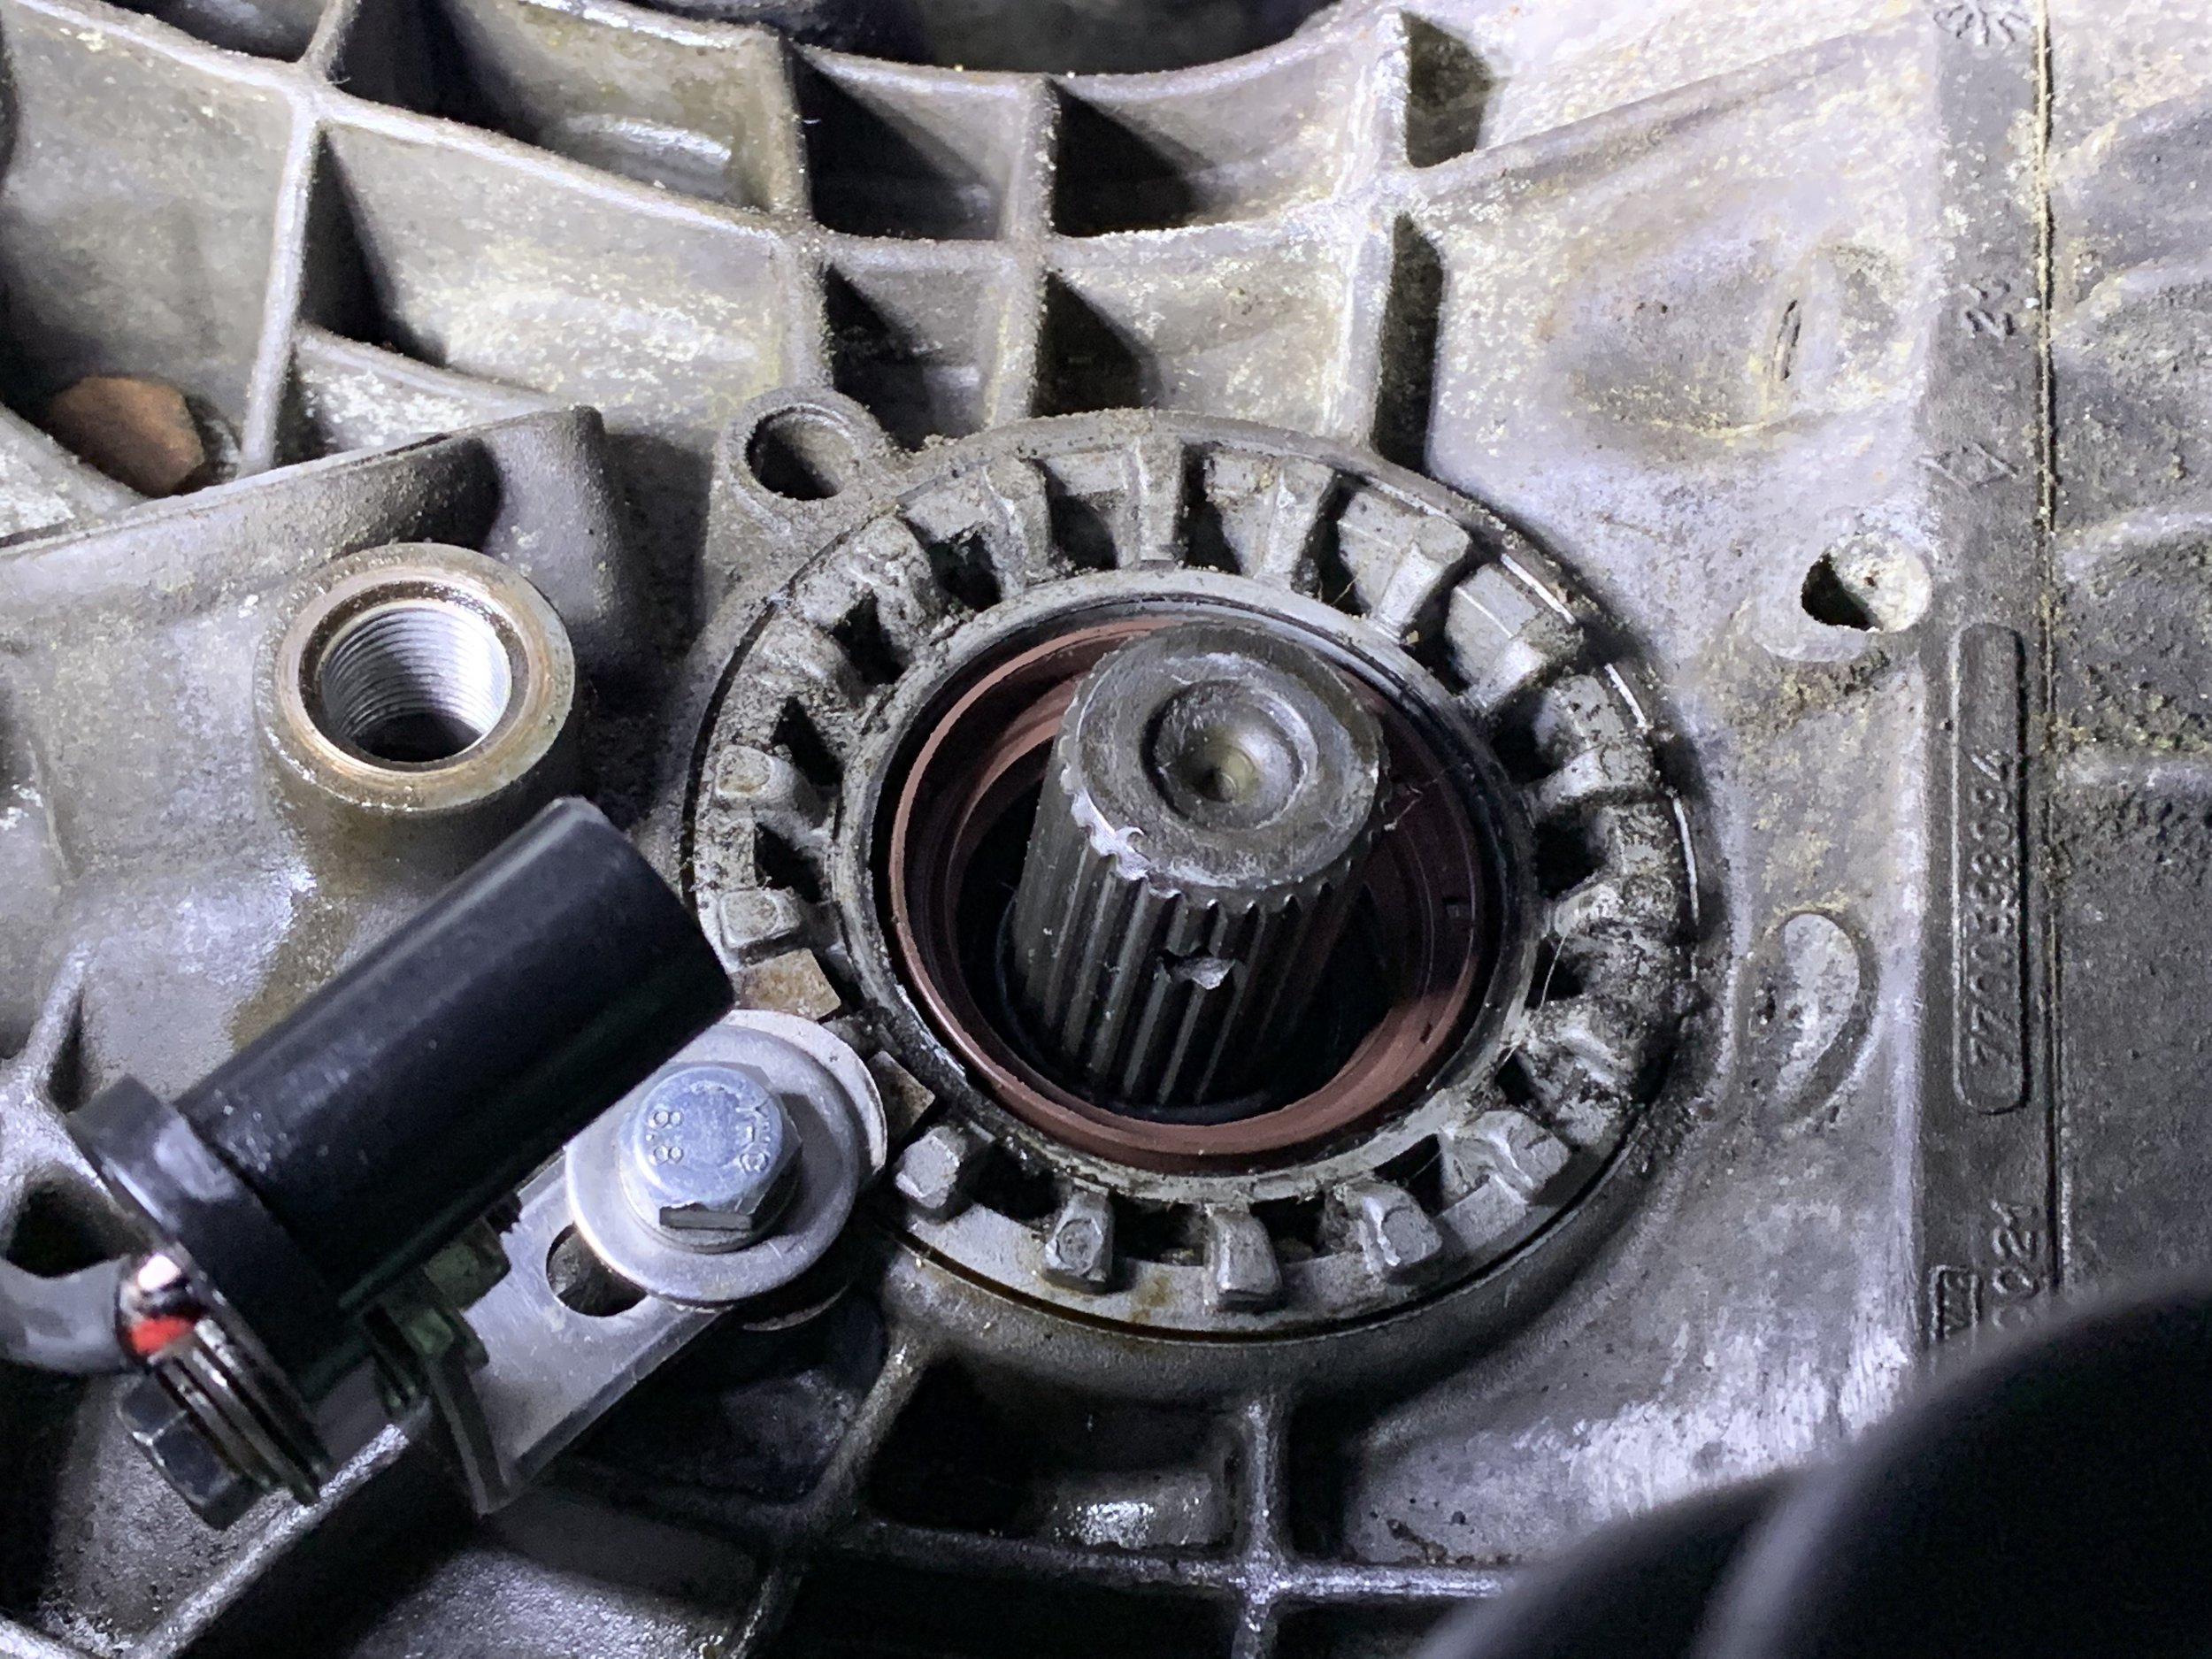 The new seal installed in the transmission.